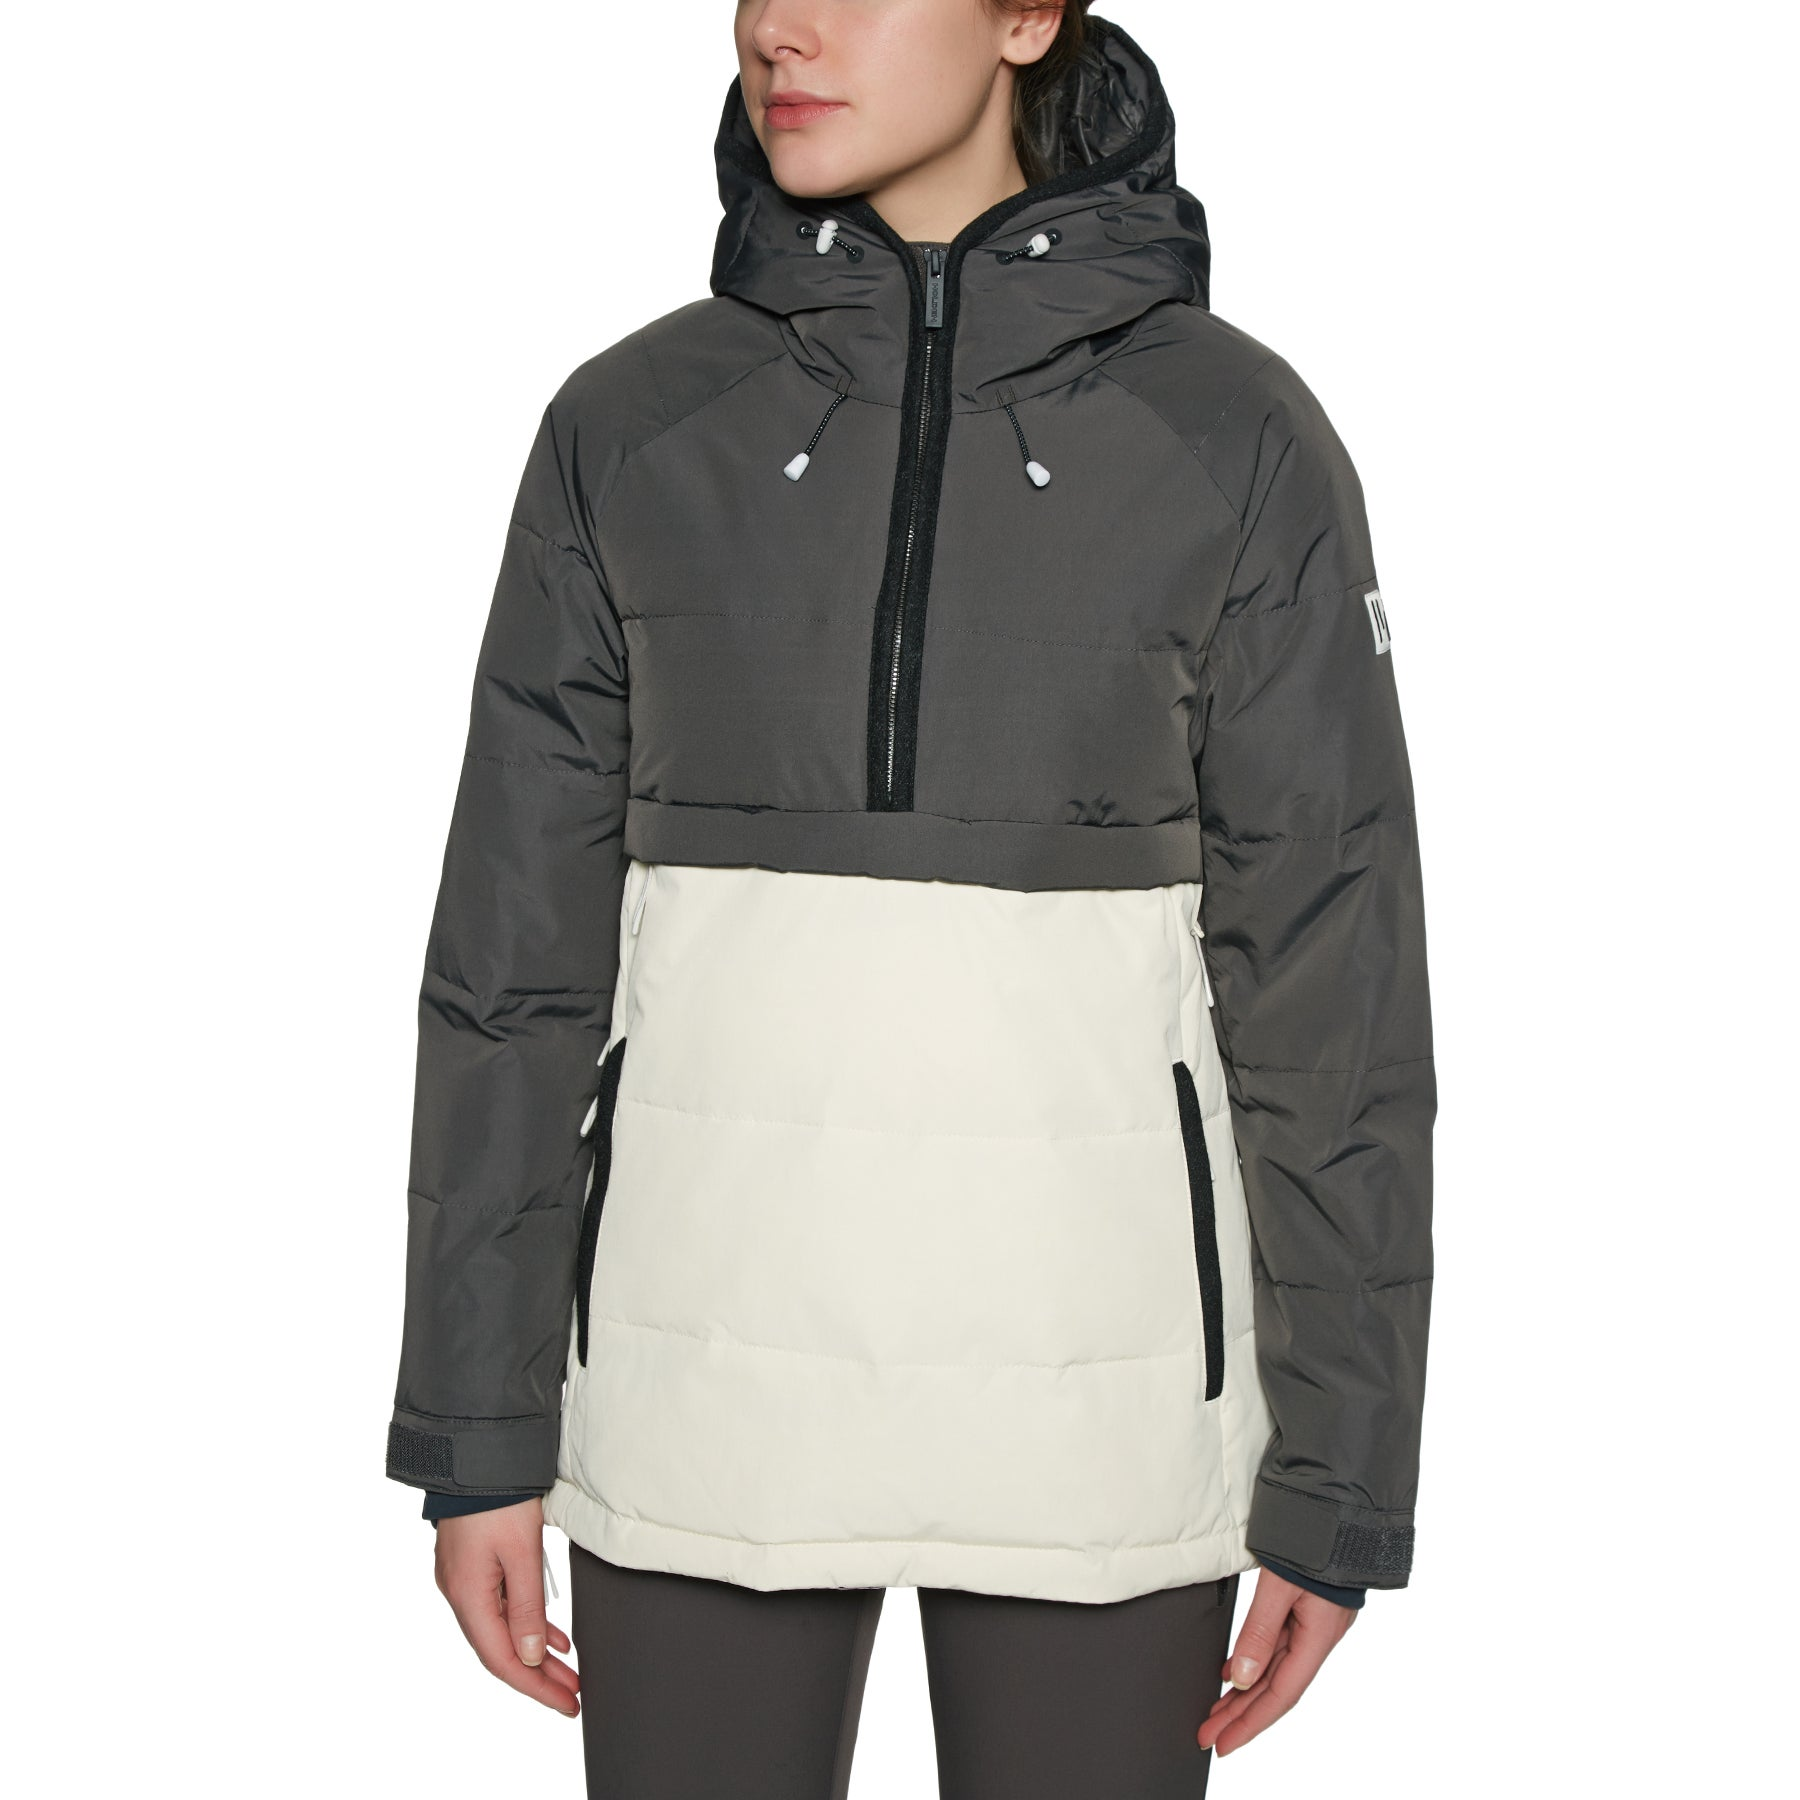 Chaqueta de snowboard Mujer Holden Side Zip Puffer - Shadow Bone